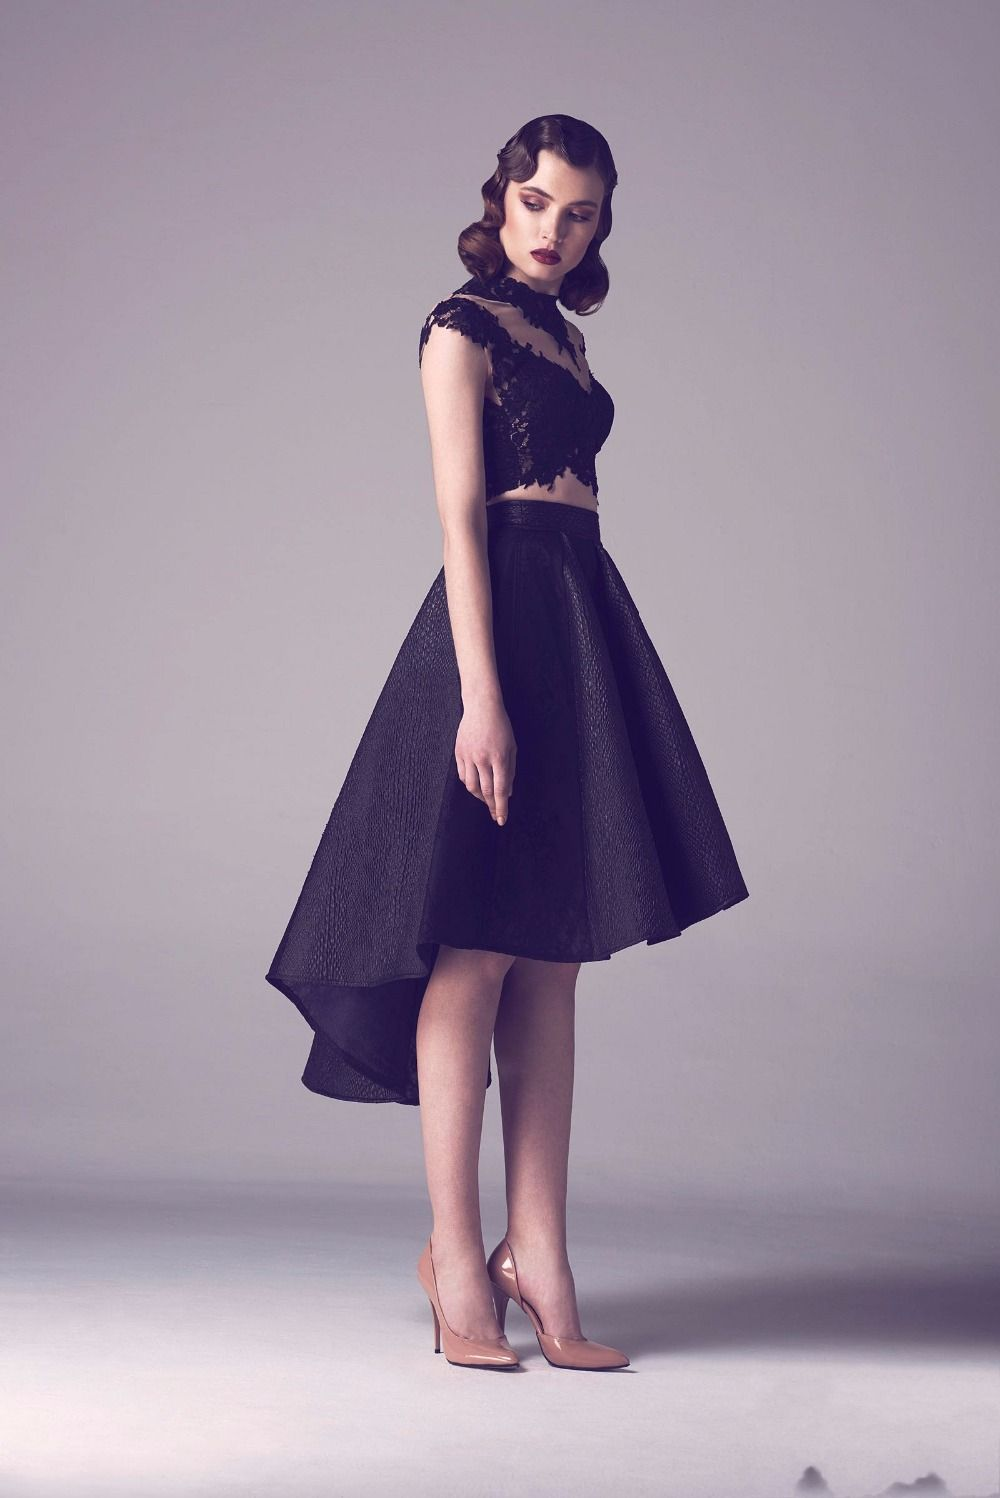 Elegant Cocktail Dresses Designs 2016 : Sexy Black High Low Mid Calf ...